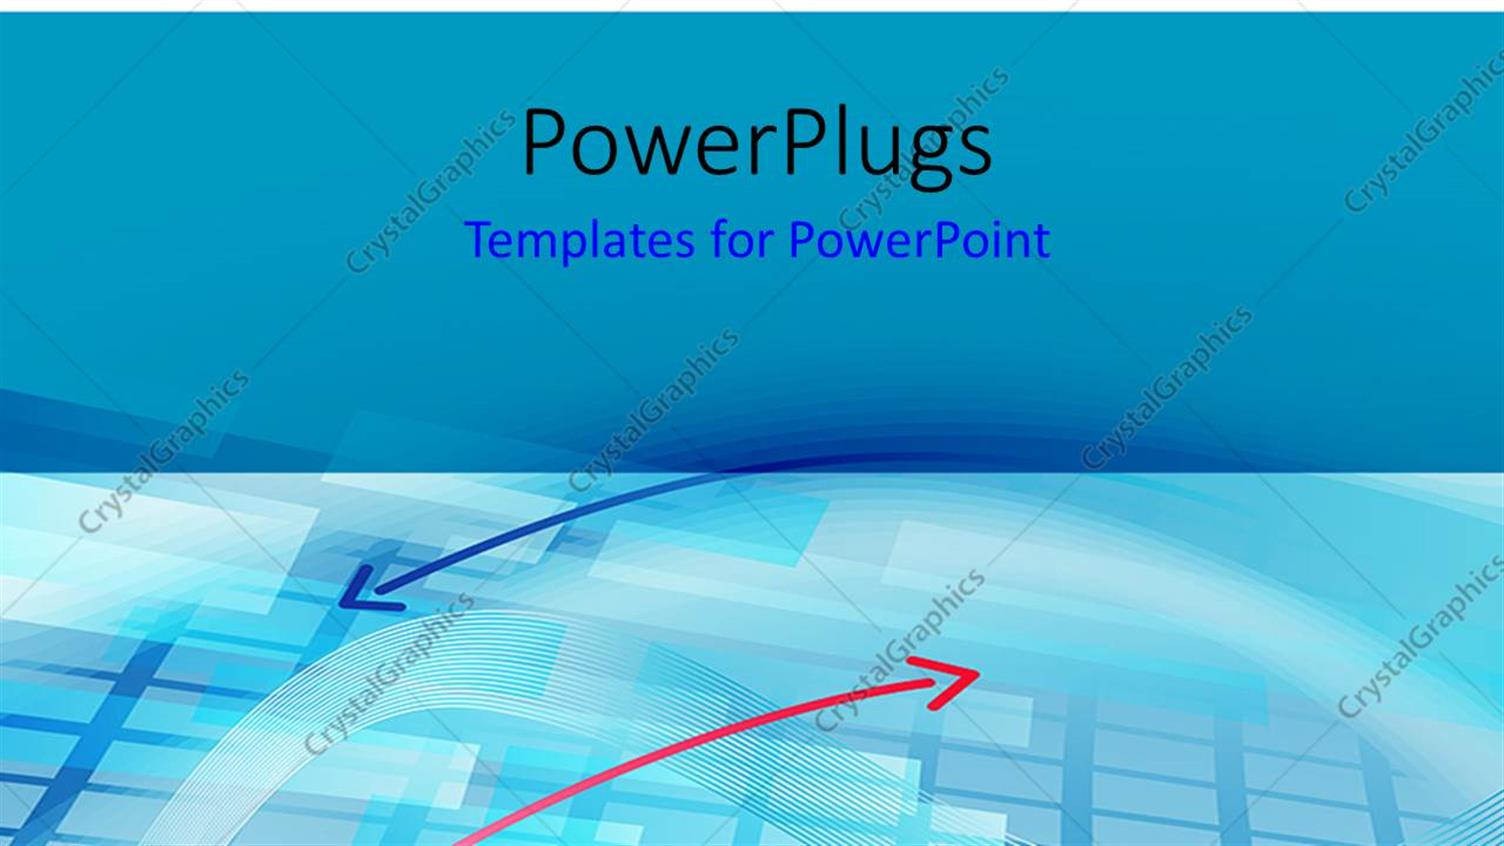 PowerPoint Template Displaying Two Pink and Blue Arrows on a Blue Background